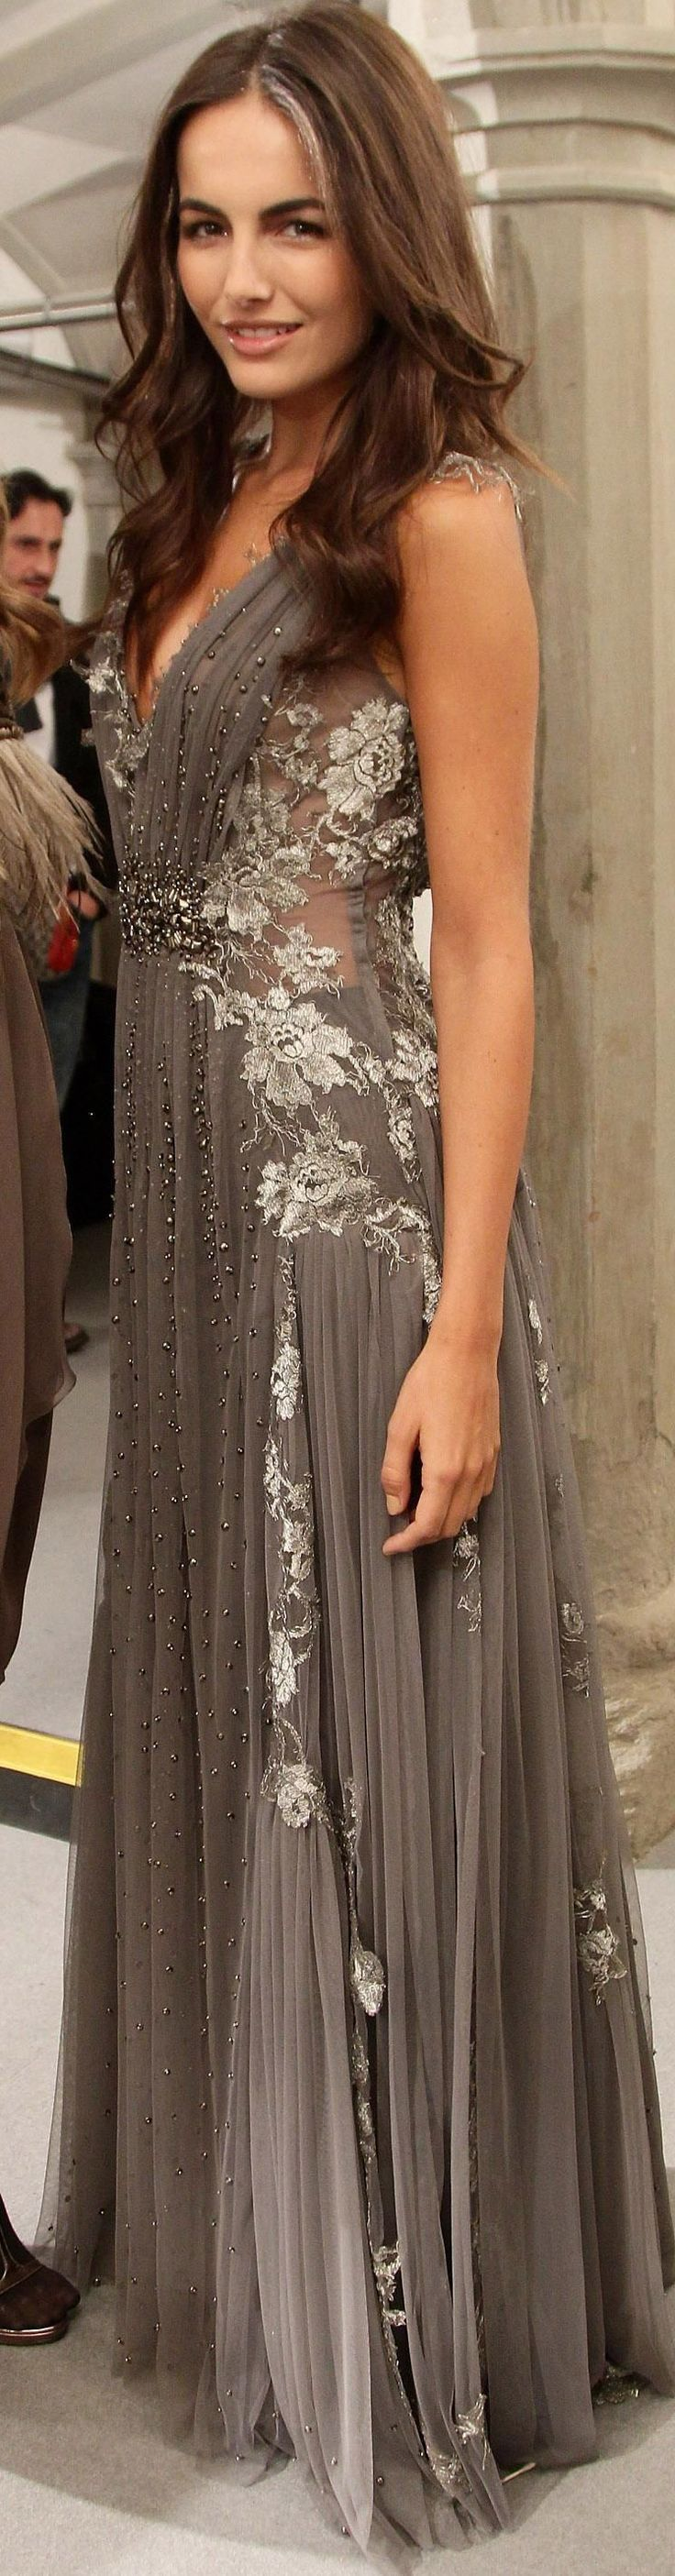 Grey gown / Alberta Ferretti / absolutely beautiful! perhaps in an off-white or antiquey color